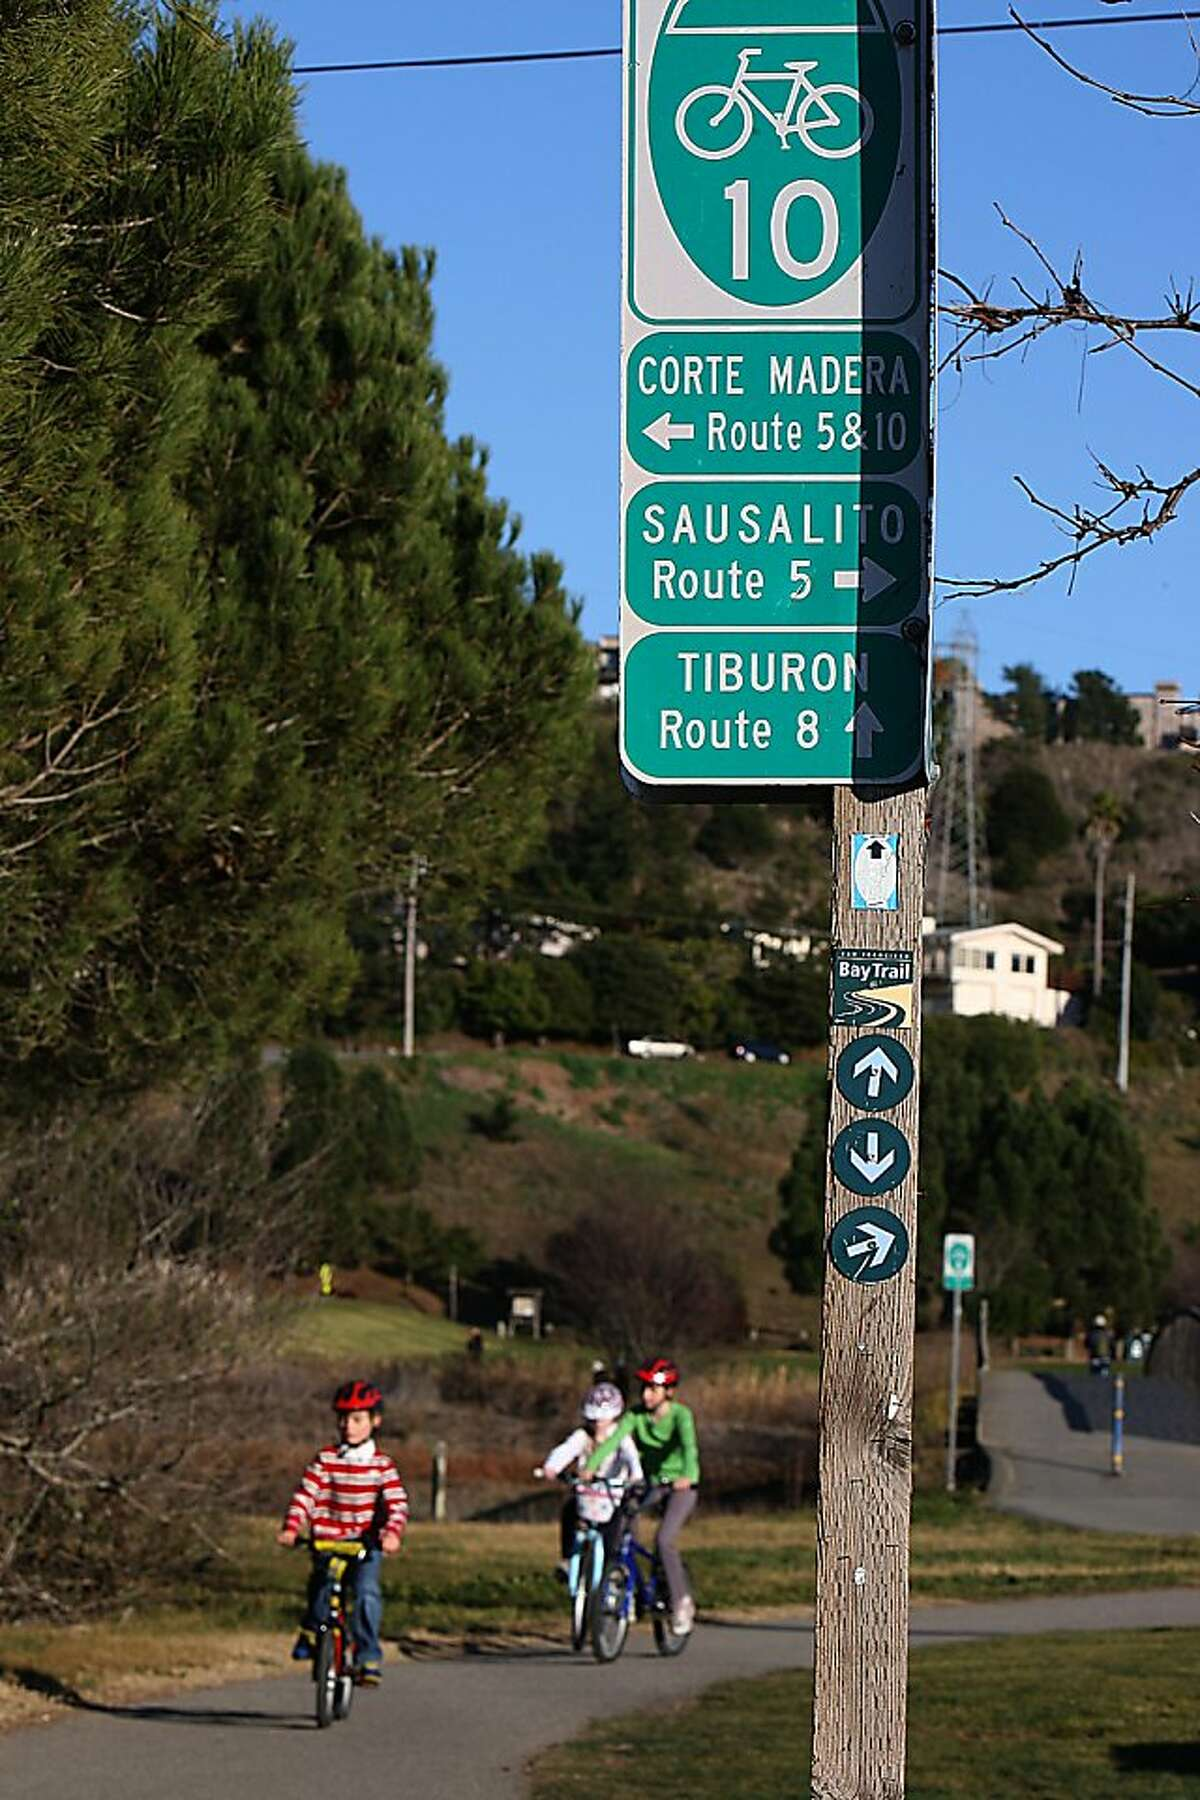 Signage at the Mill Valley-Sausalito path in Mill Valley, Calif., while pedestrians use the path on Sunday, January 15, 2012.